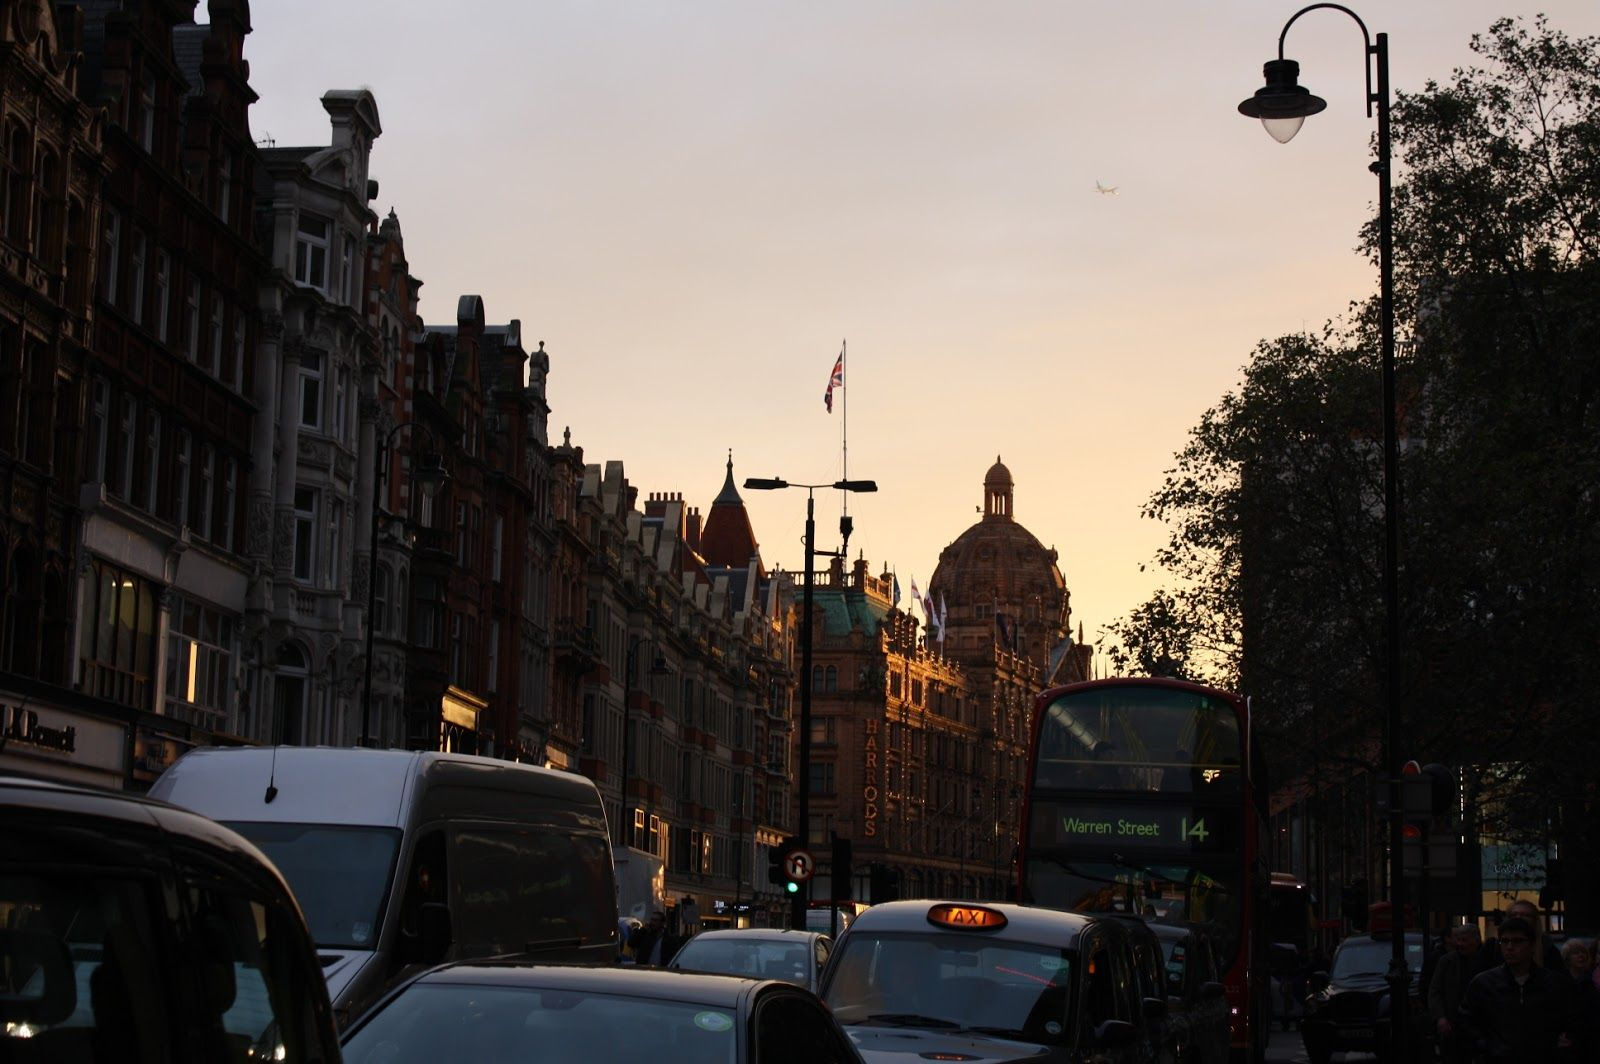 IMG_5477.JPG (1600×1064) | LONDON UK IN FIRST PERSON | Pinterest